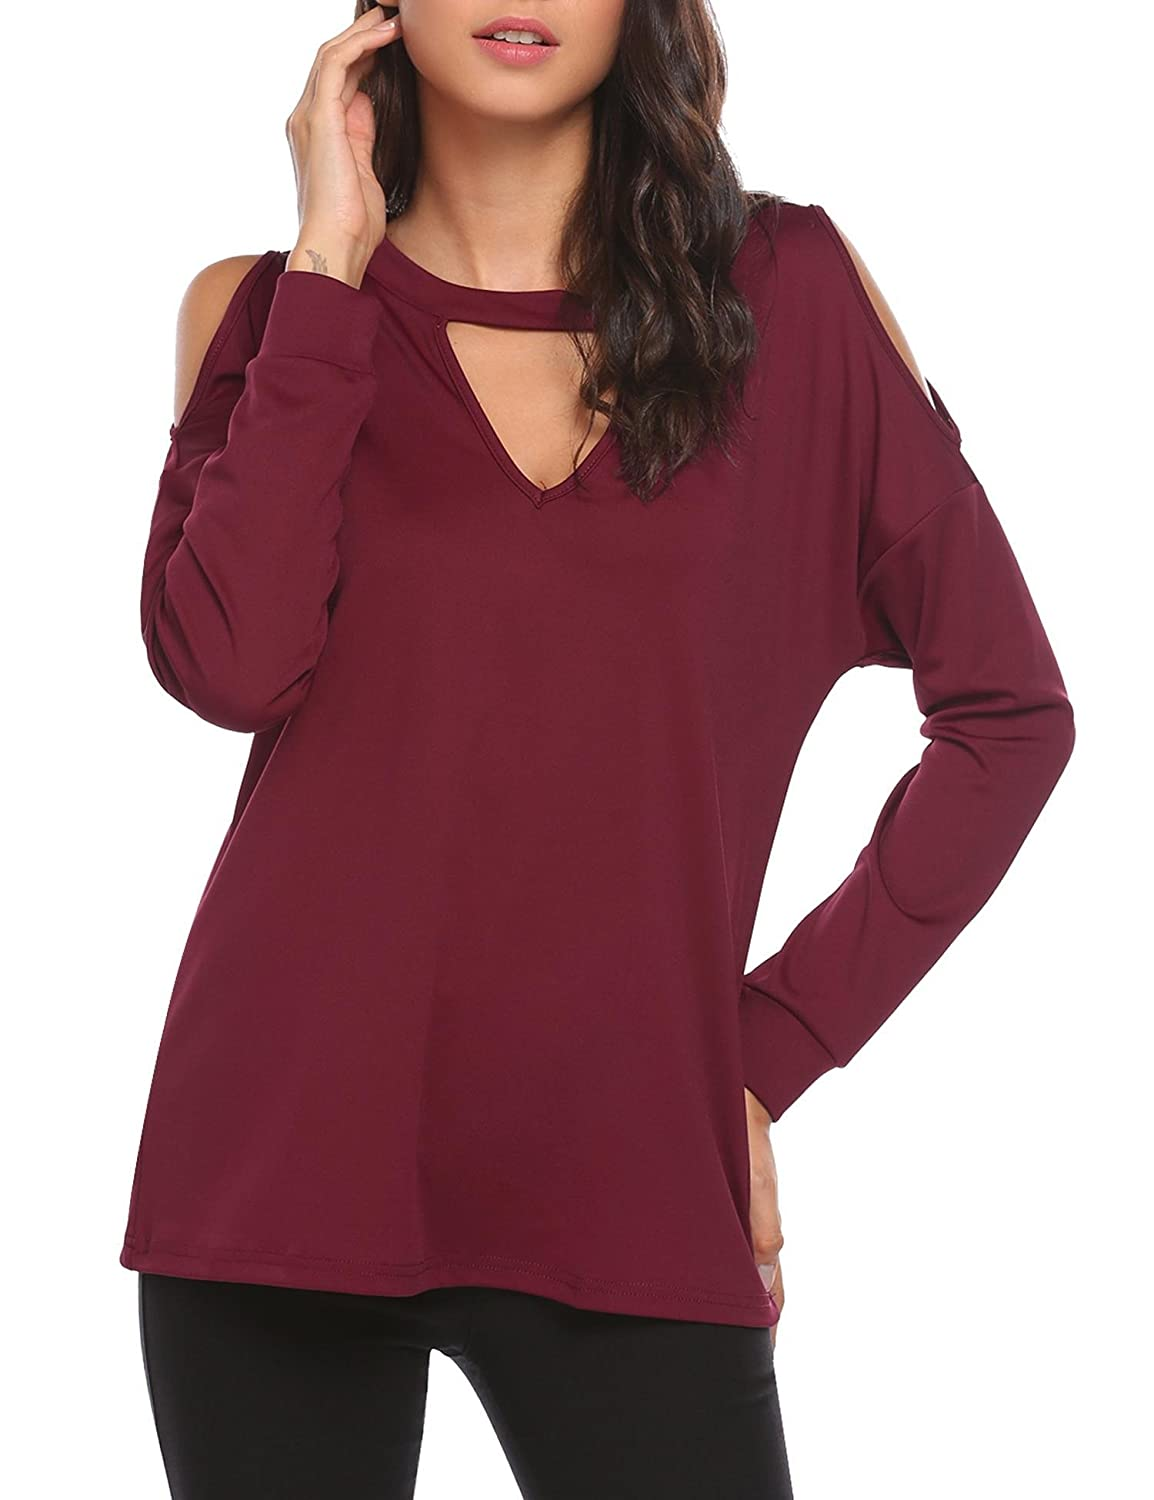 41529b89856a7 ThinIce Women s Cold Shoulder Long Sleeve Shirt Choker V Neck Casual Tops  S-XL at Amazon Women s Clothing store